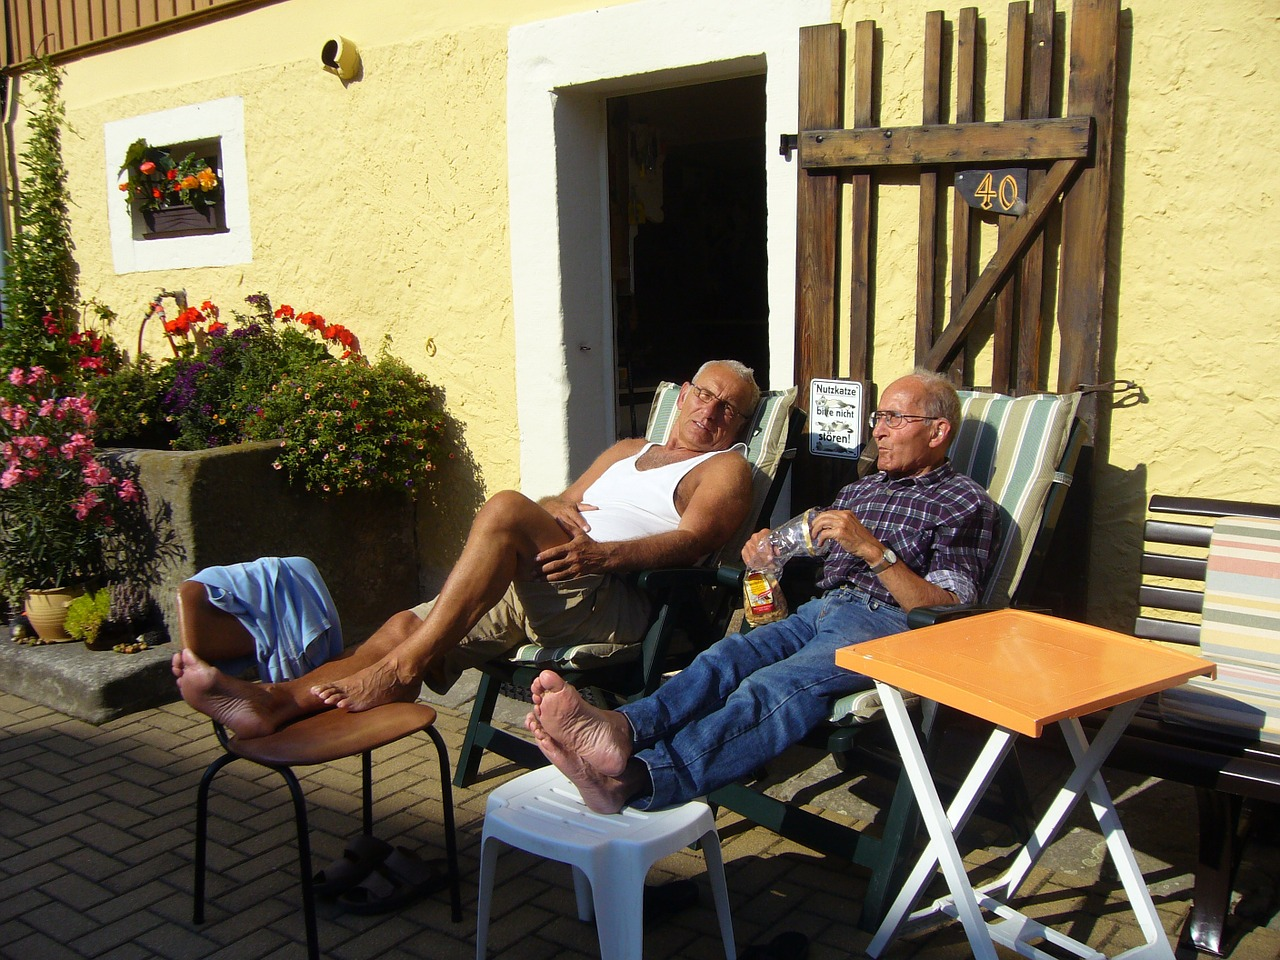 rest,seniors,pensioners,men,summer resort,farm,older,older gentlemen,men's,holiday,free pictures, free photos, free images, royalty free, free illustrations, public domain